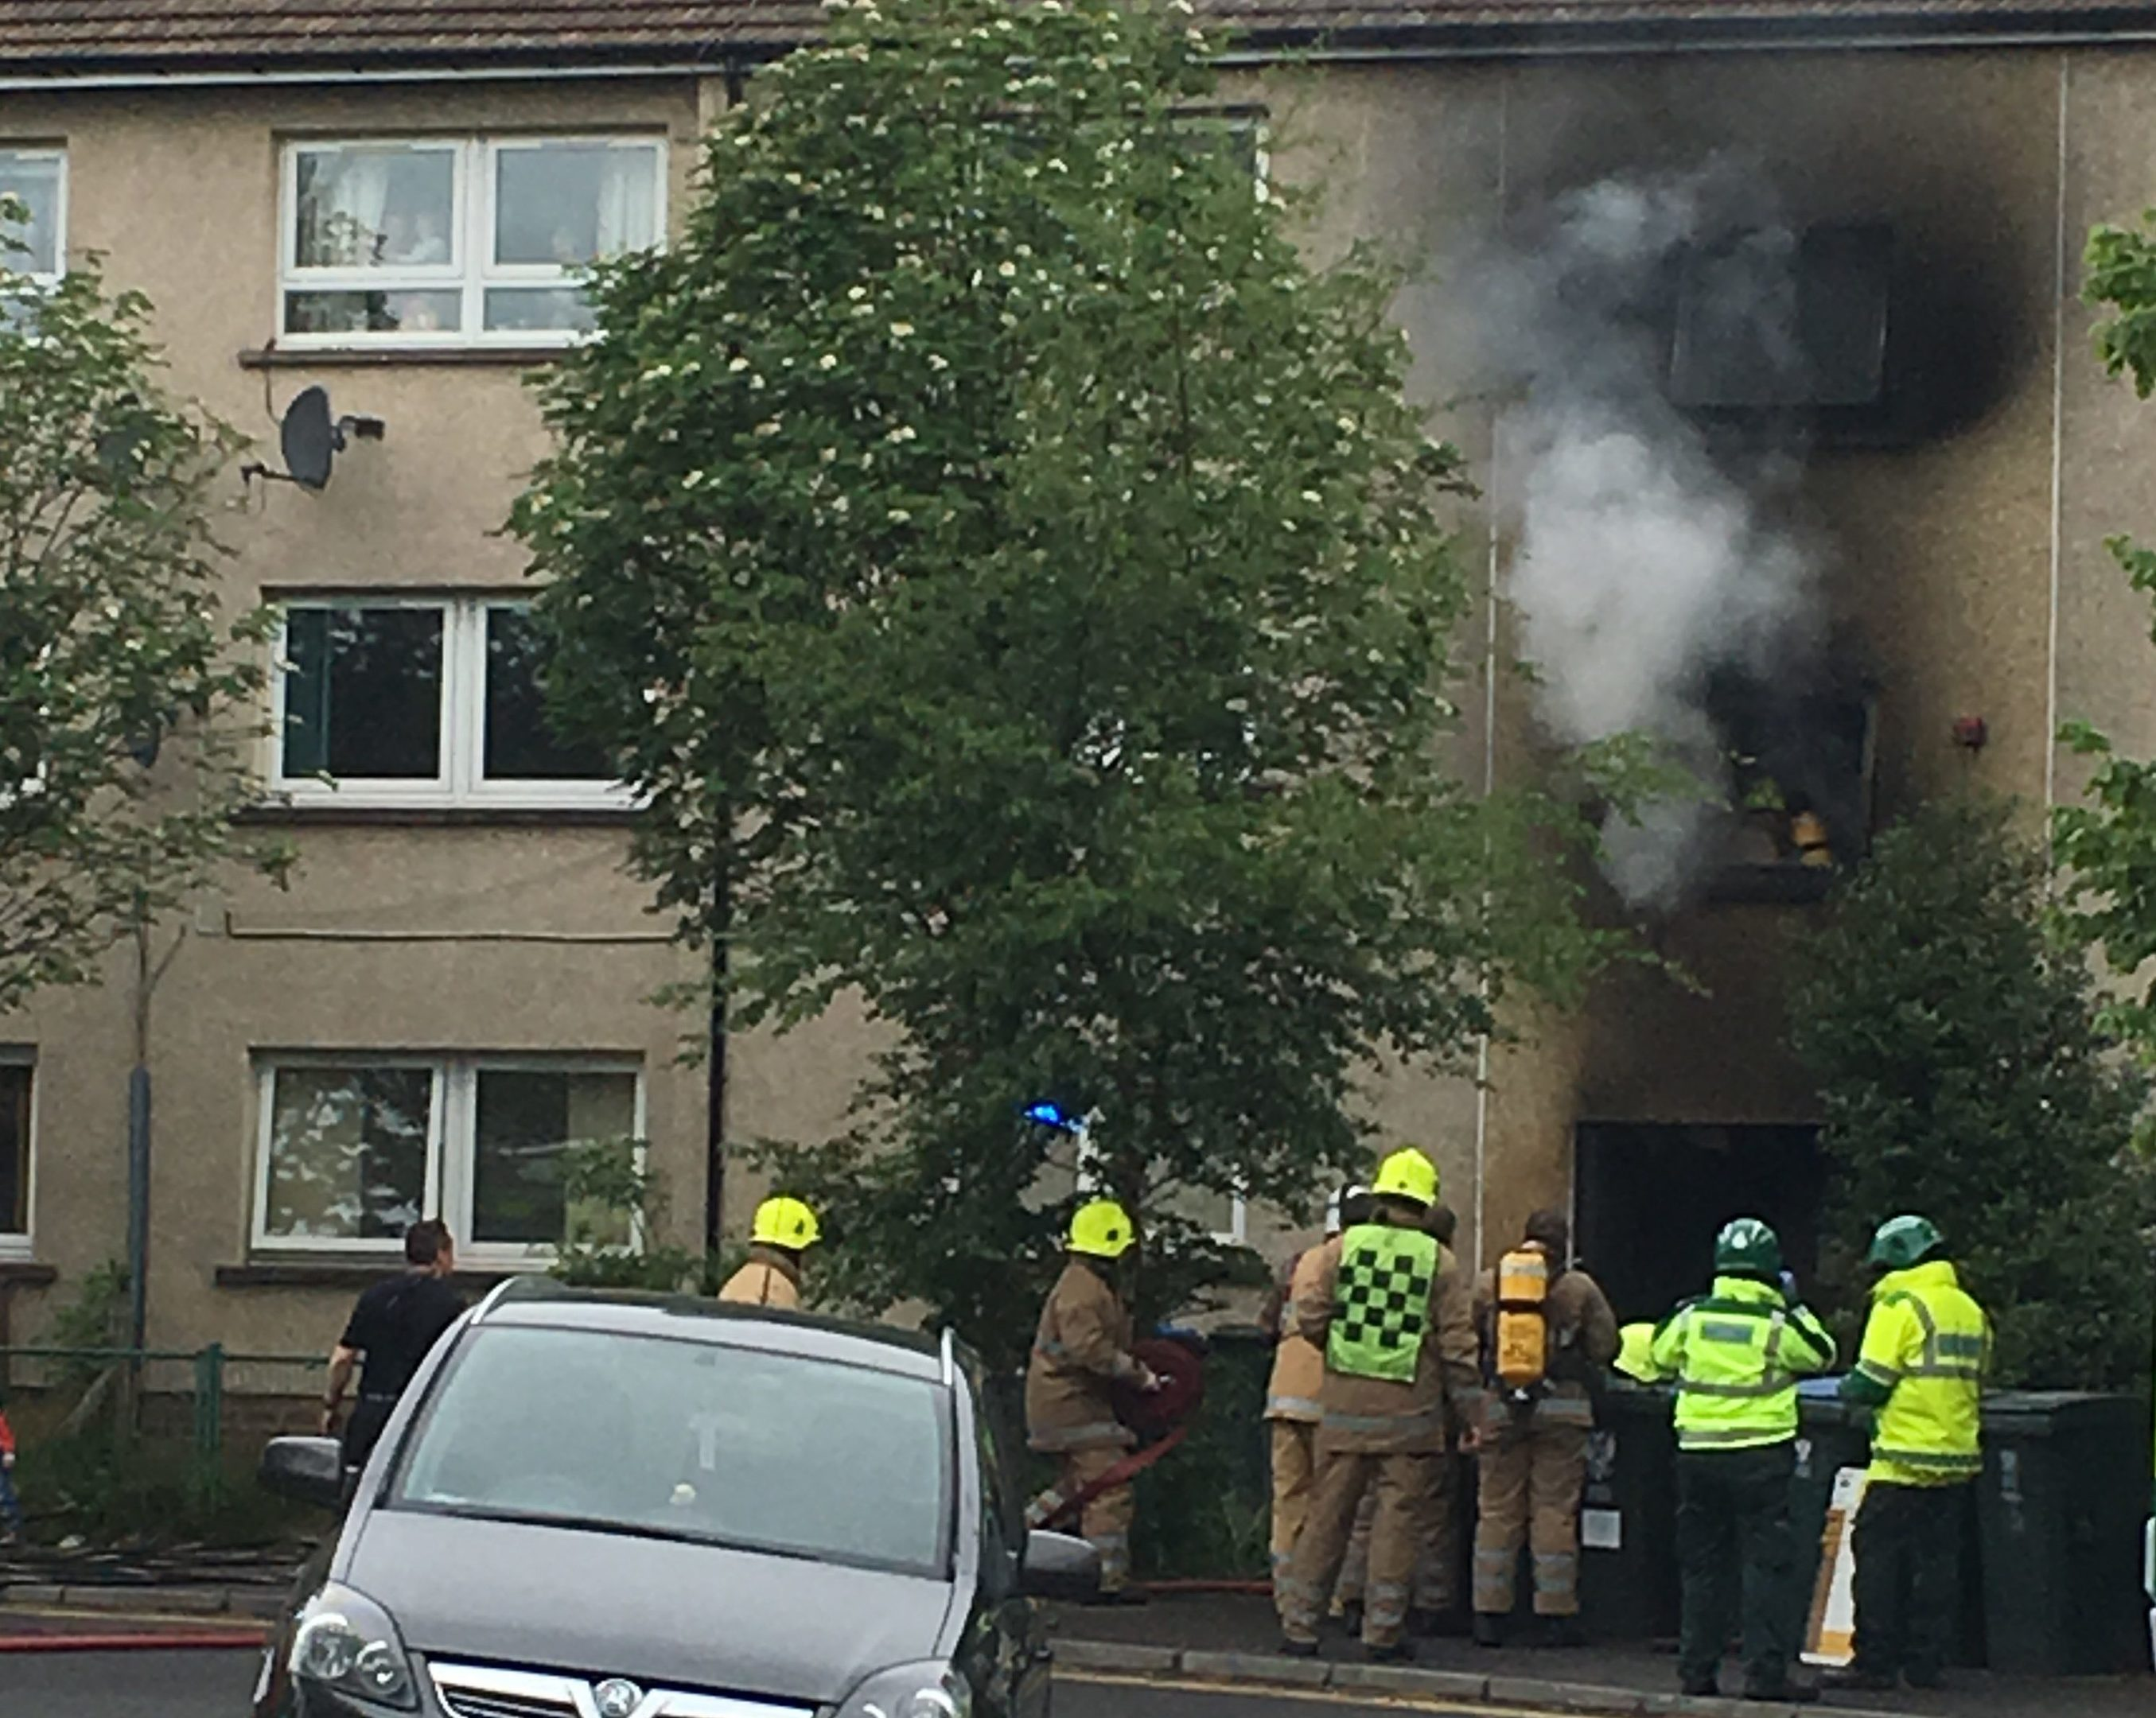 Thick black smoke billowed from flats in Newhouse Road after an explosion rocked the neighbourhood.